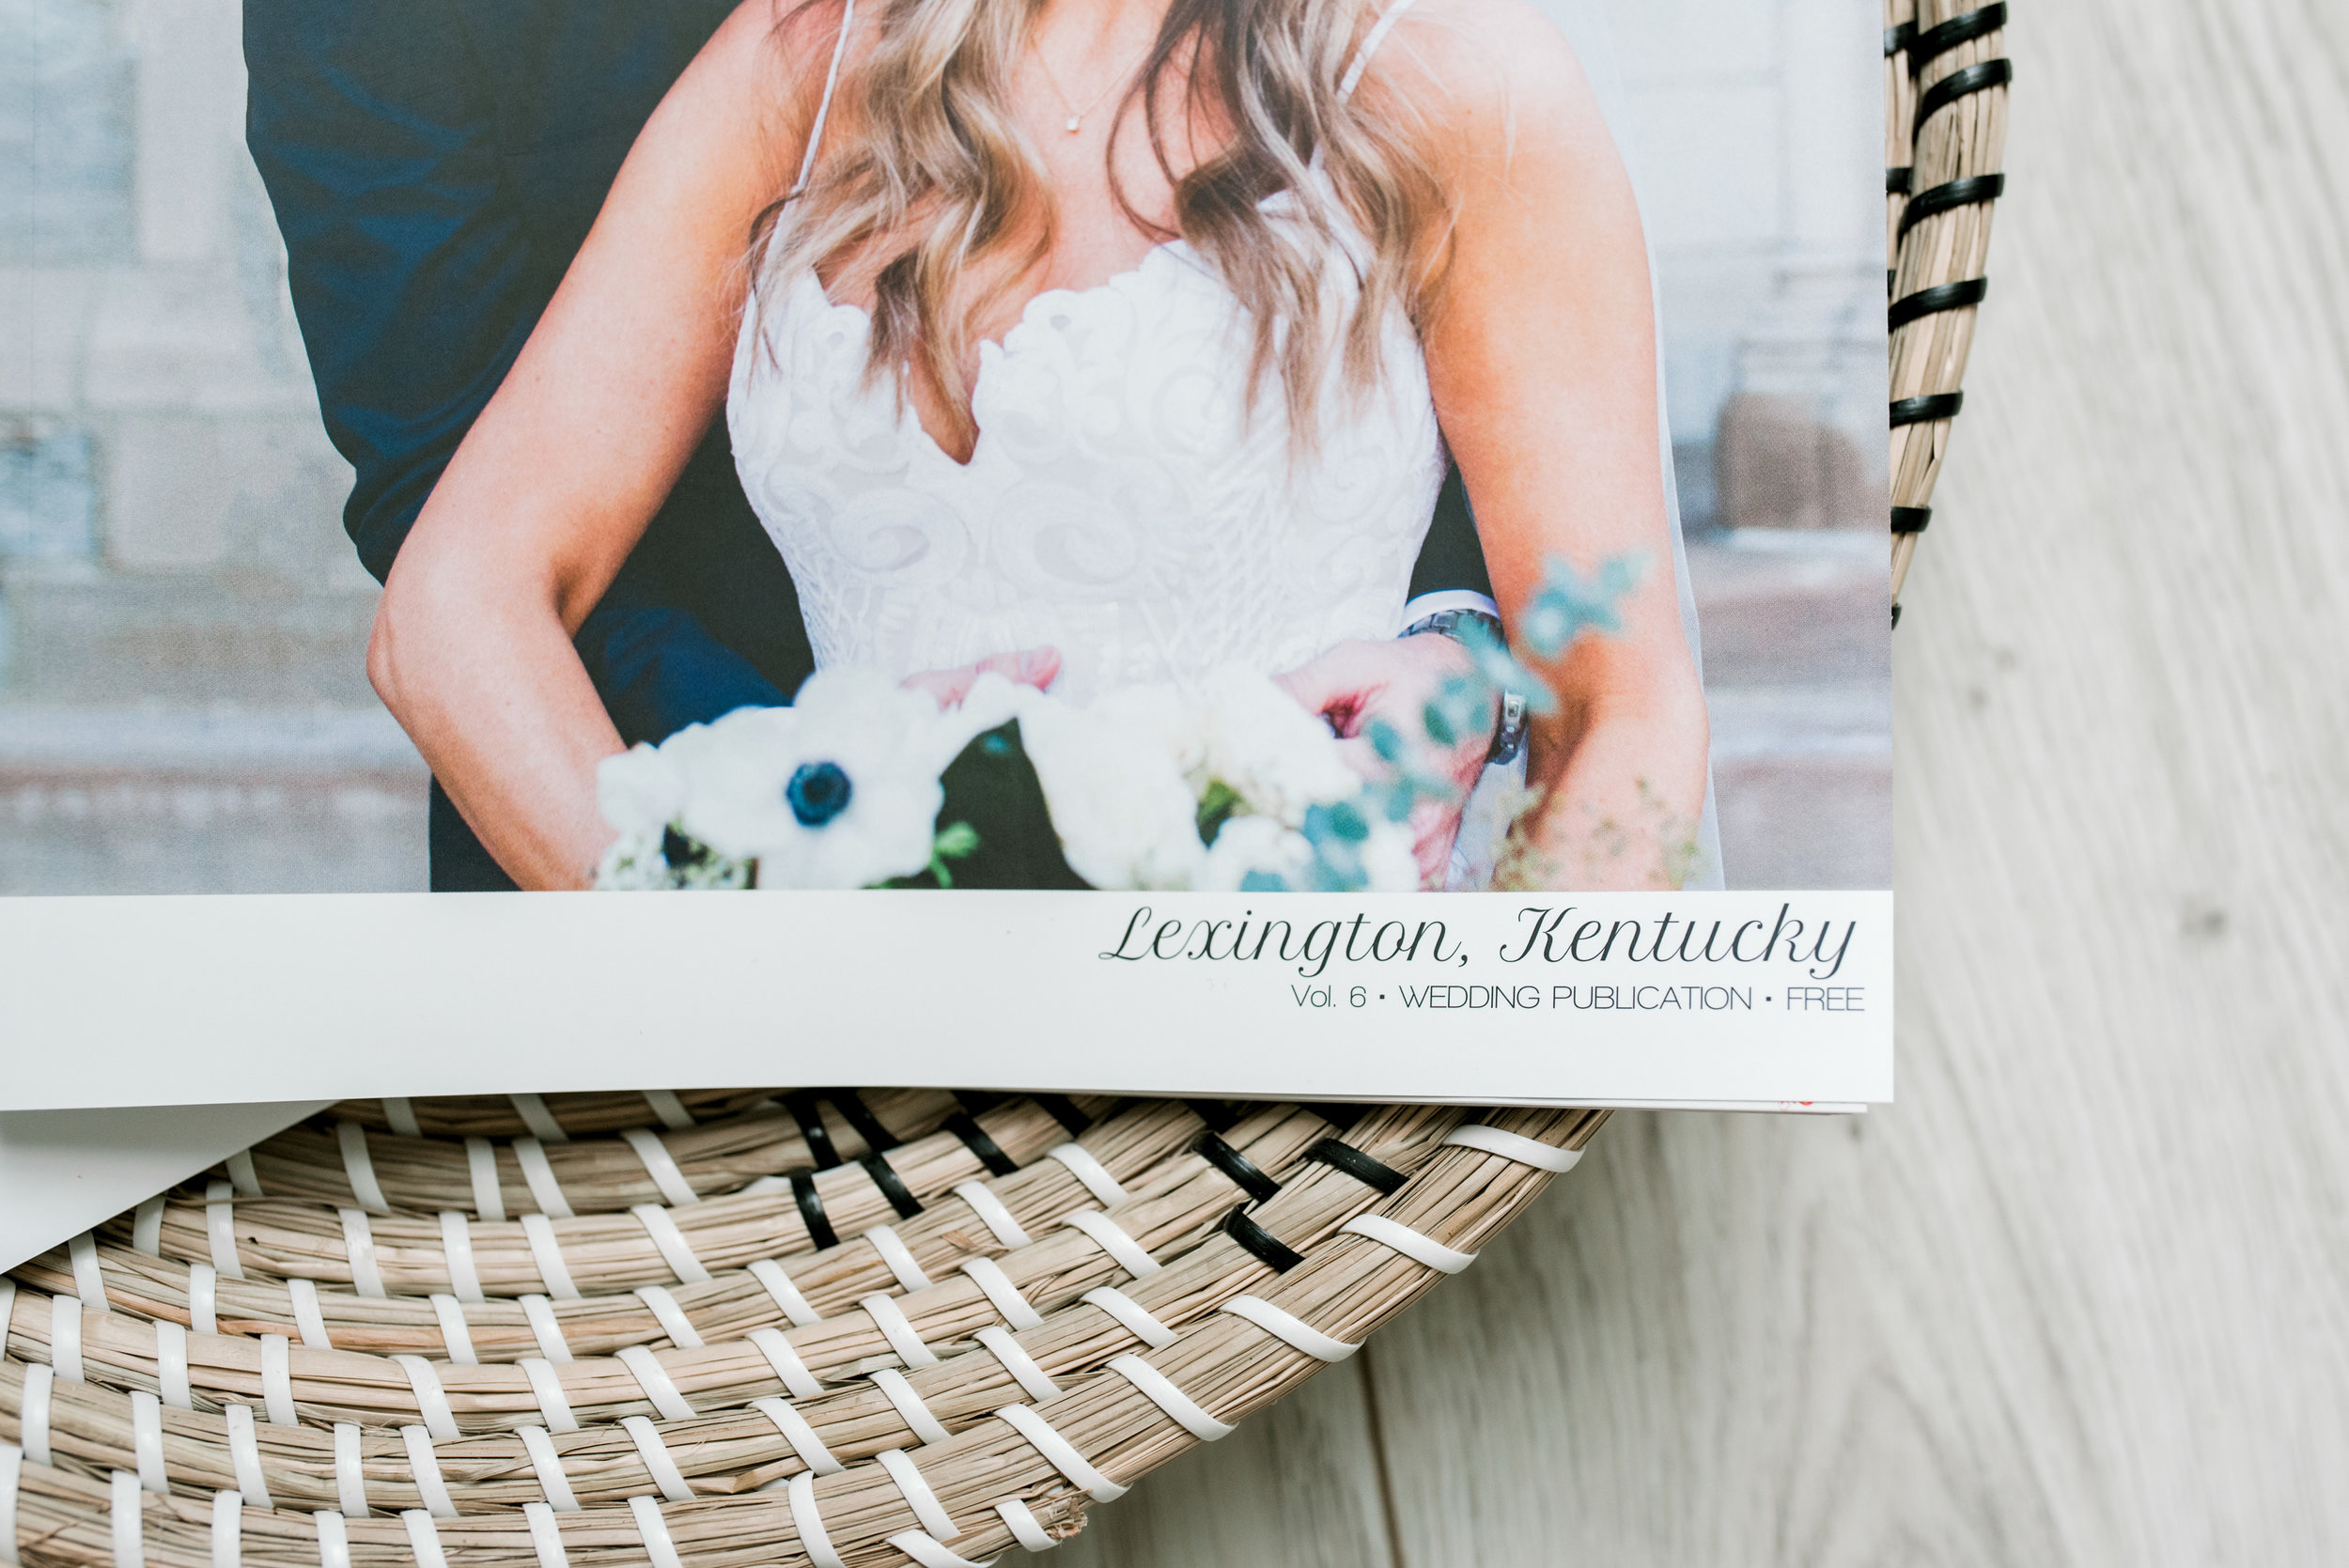 lexington-wedding-photographer-featured